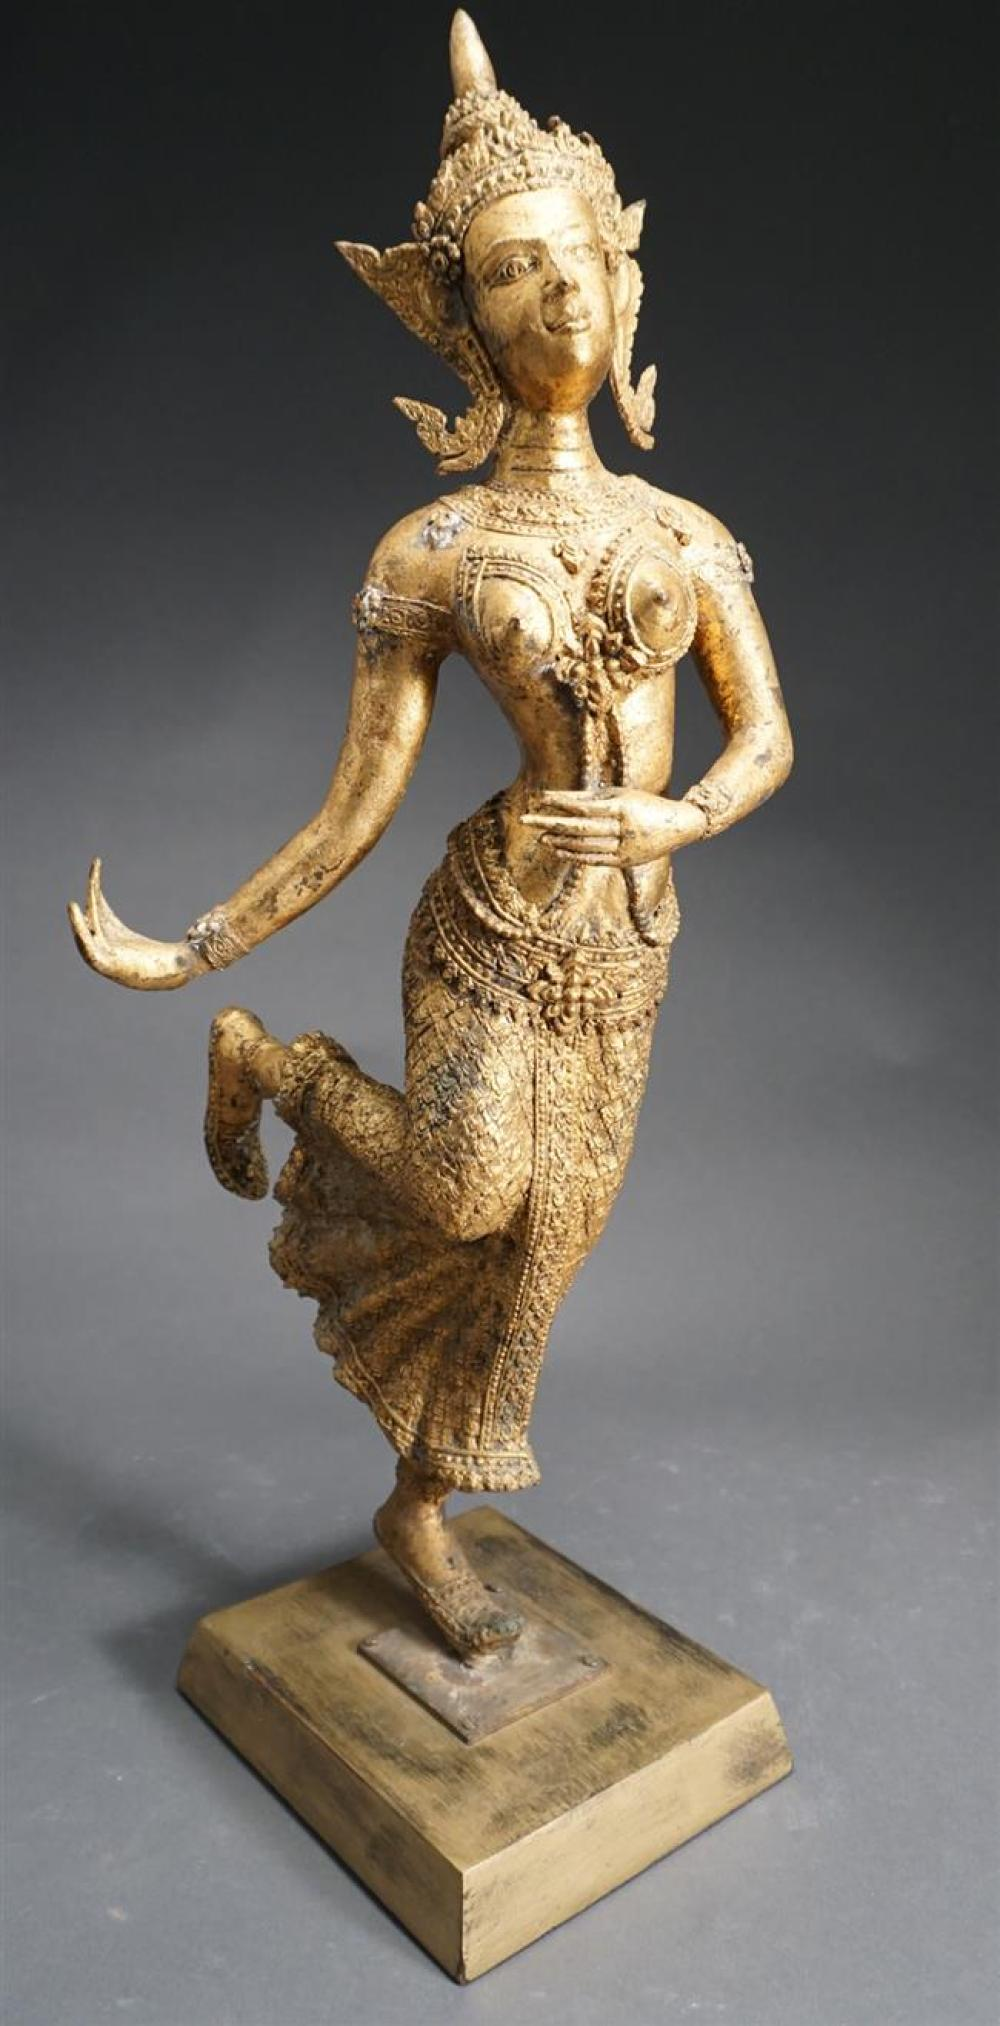 Thai Gilt Painted Metal Figure of a Dancing Deity on Wood Stand, Height: 27 in